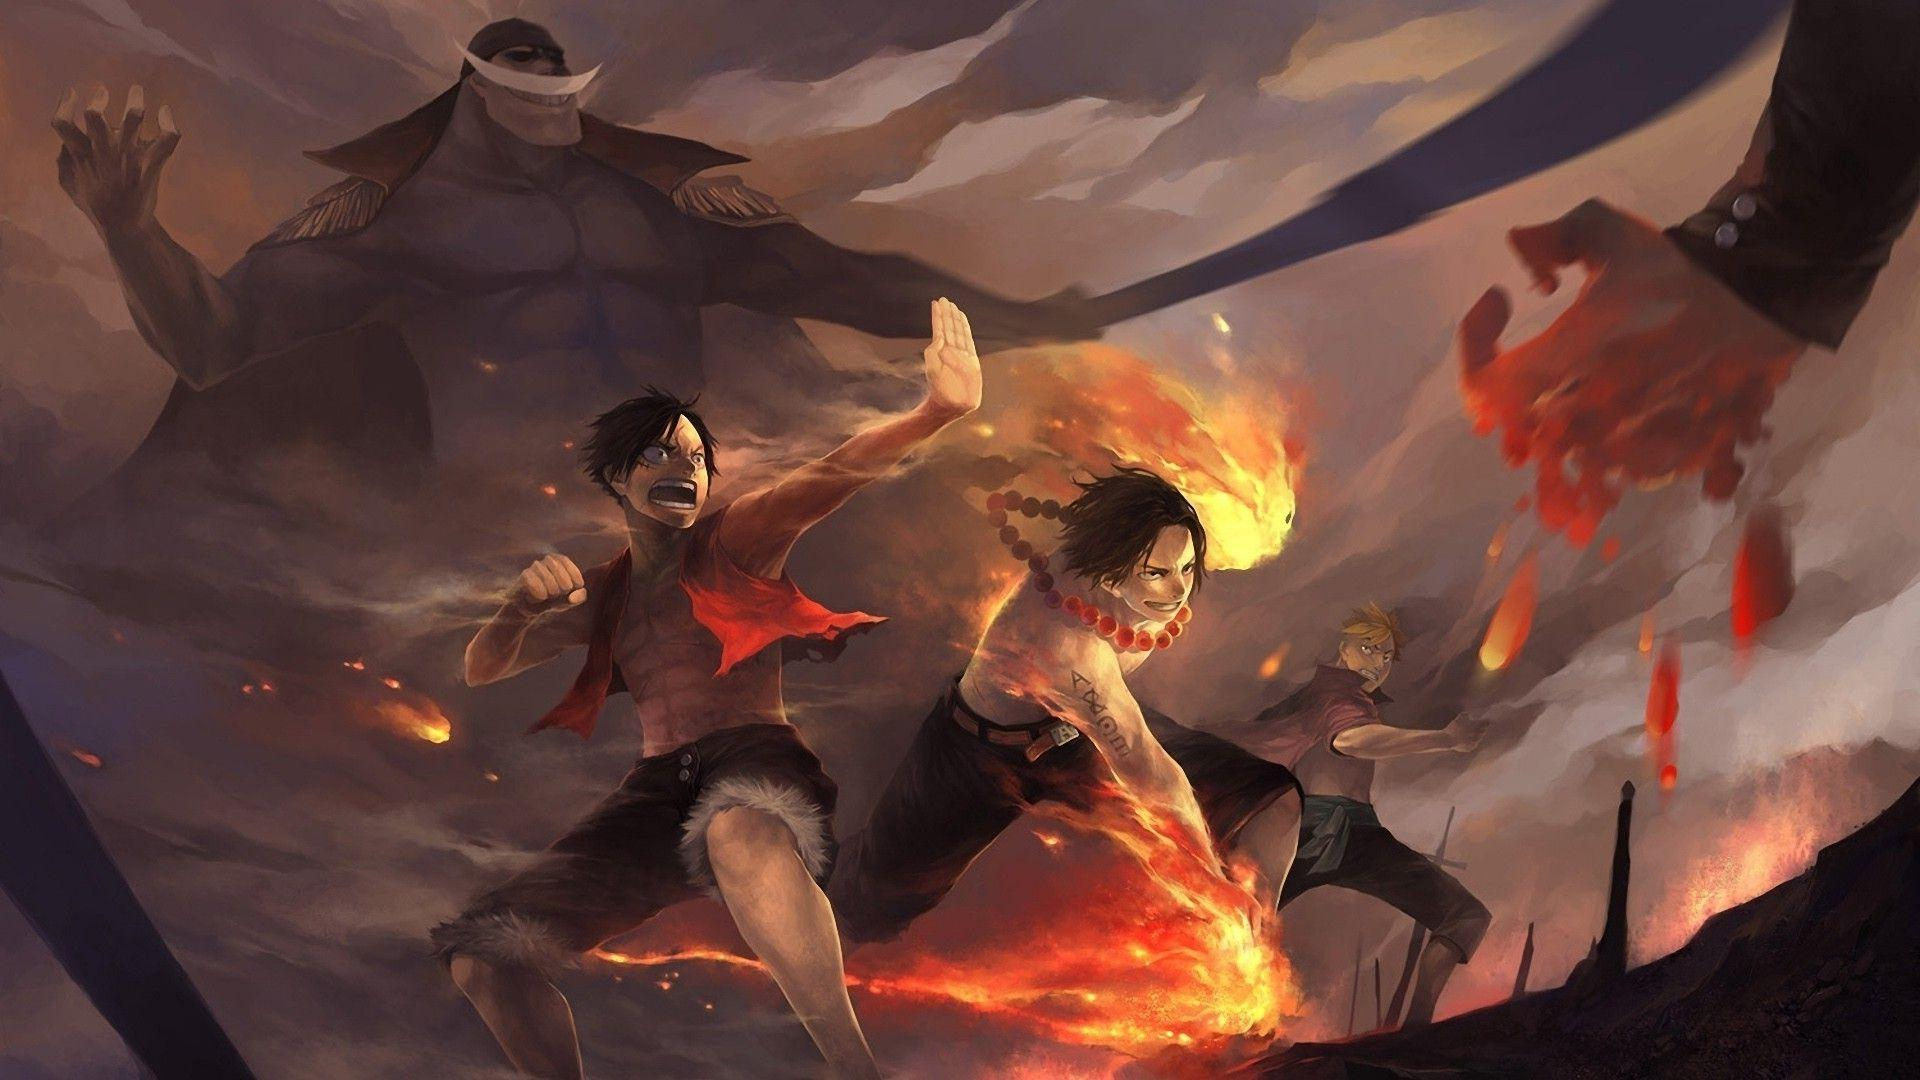 anime, One Piece, Monkey D. Luffy, Portgas D. Ace, Whitebeard